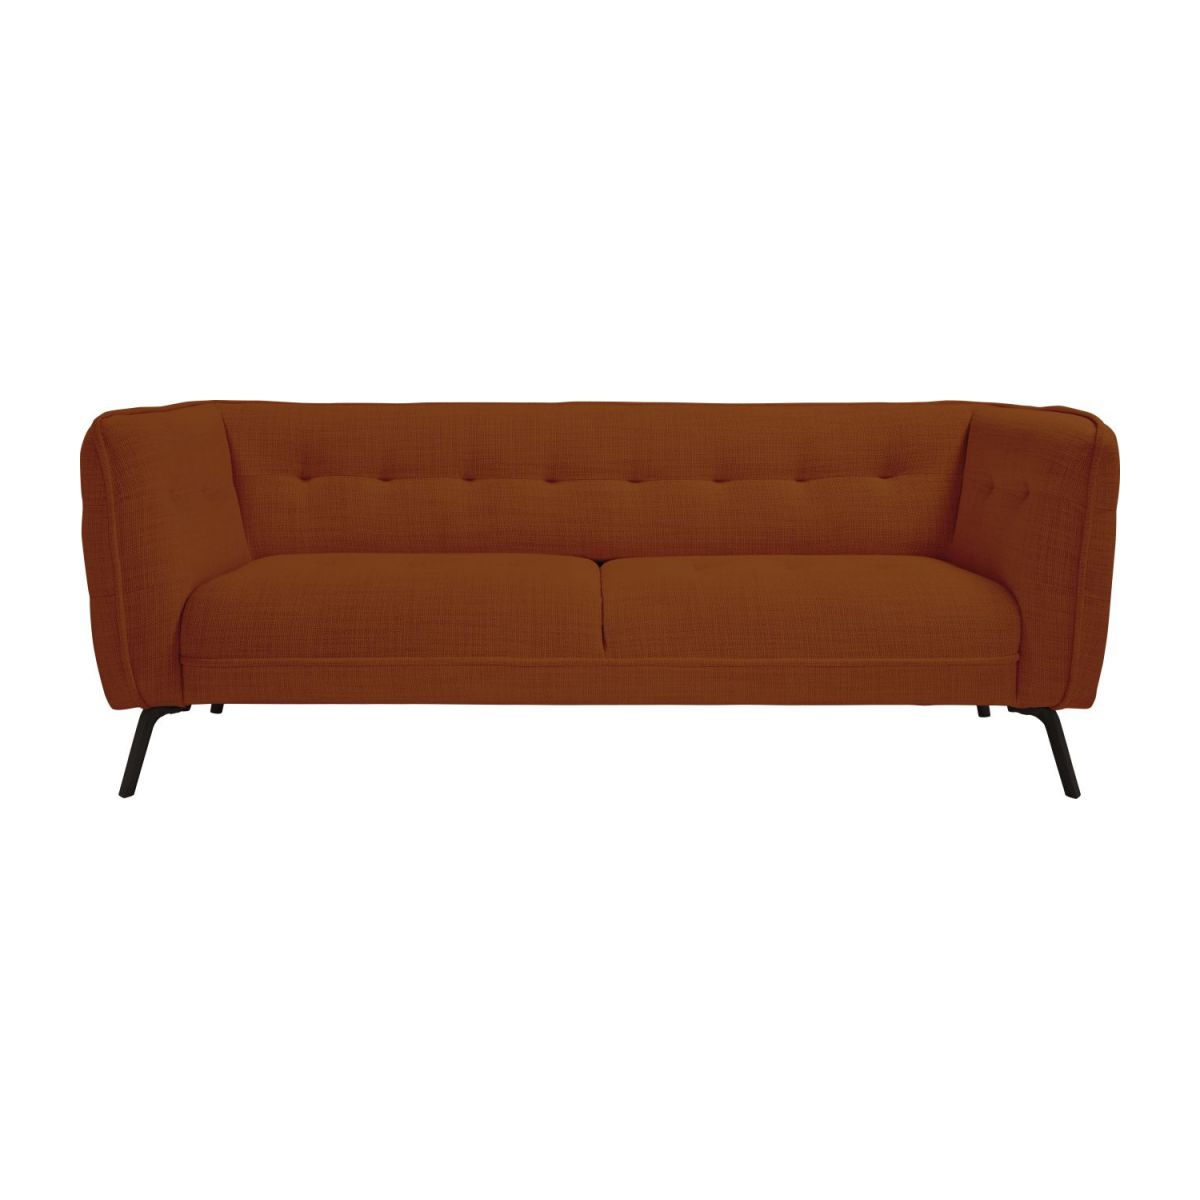 3 seater sofa in Fasoli fabric, warm red rock and dark legs n°2